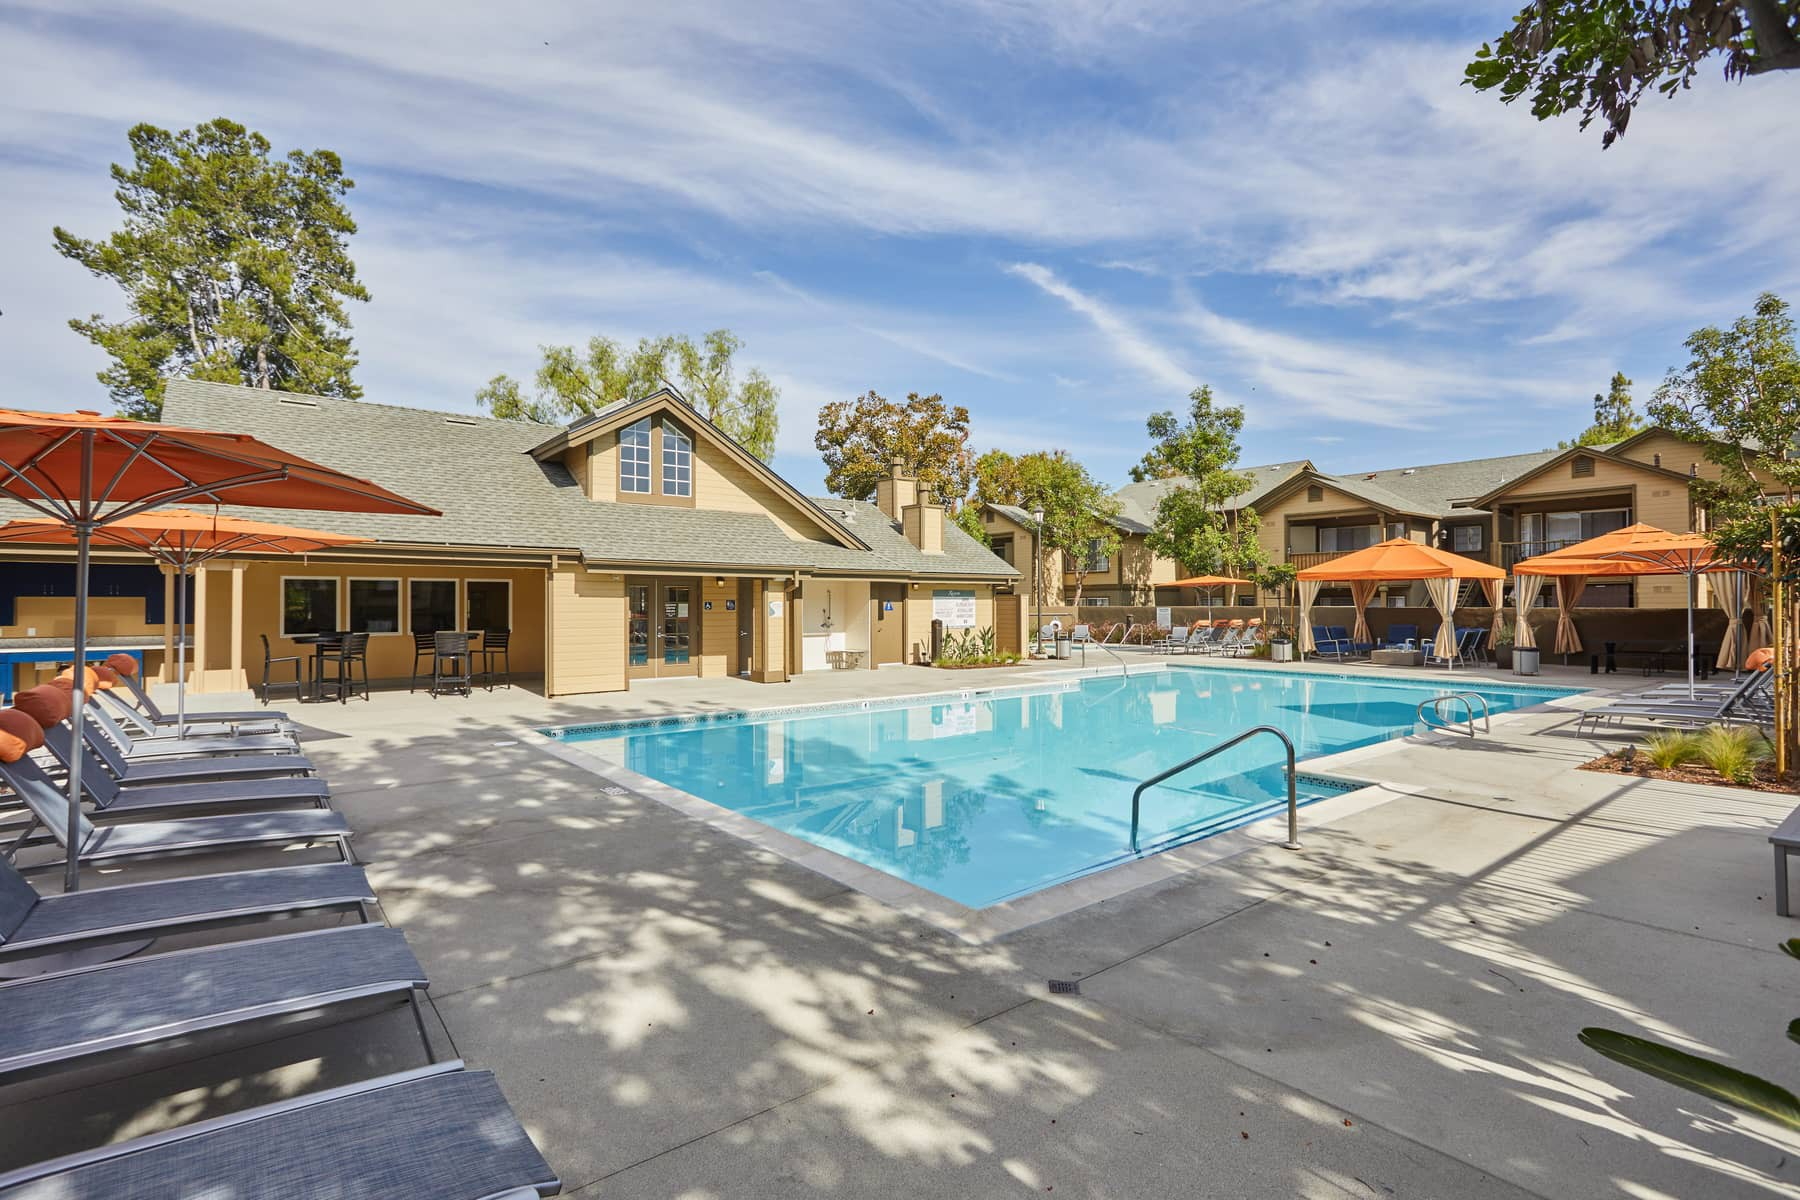 Apartments Near Claremont Reserve at Chino Hills for Claremont McKenna College Students in Claremont, CA